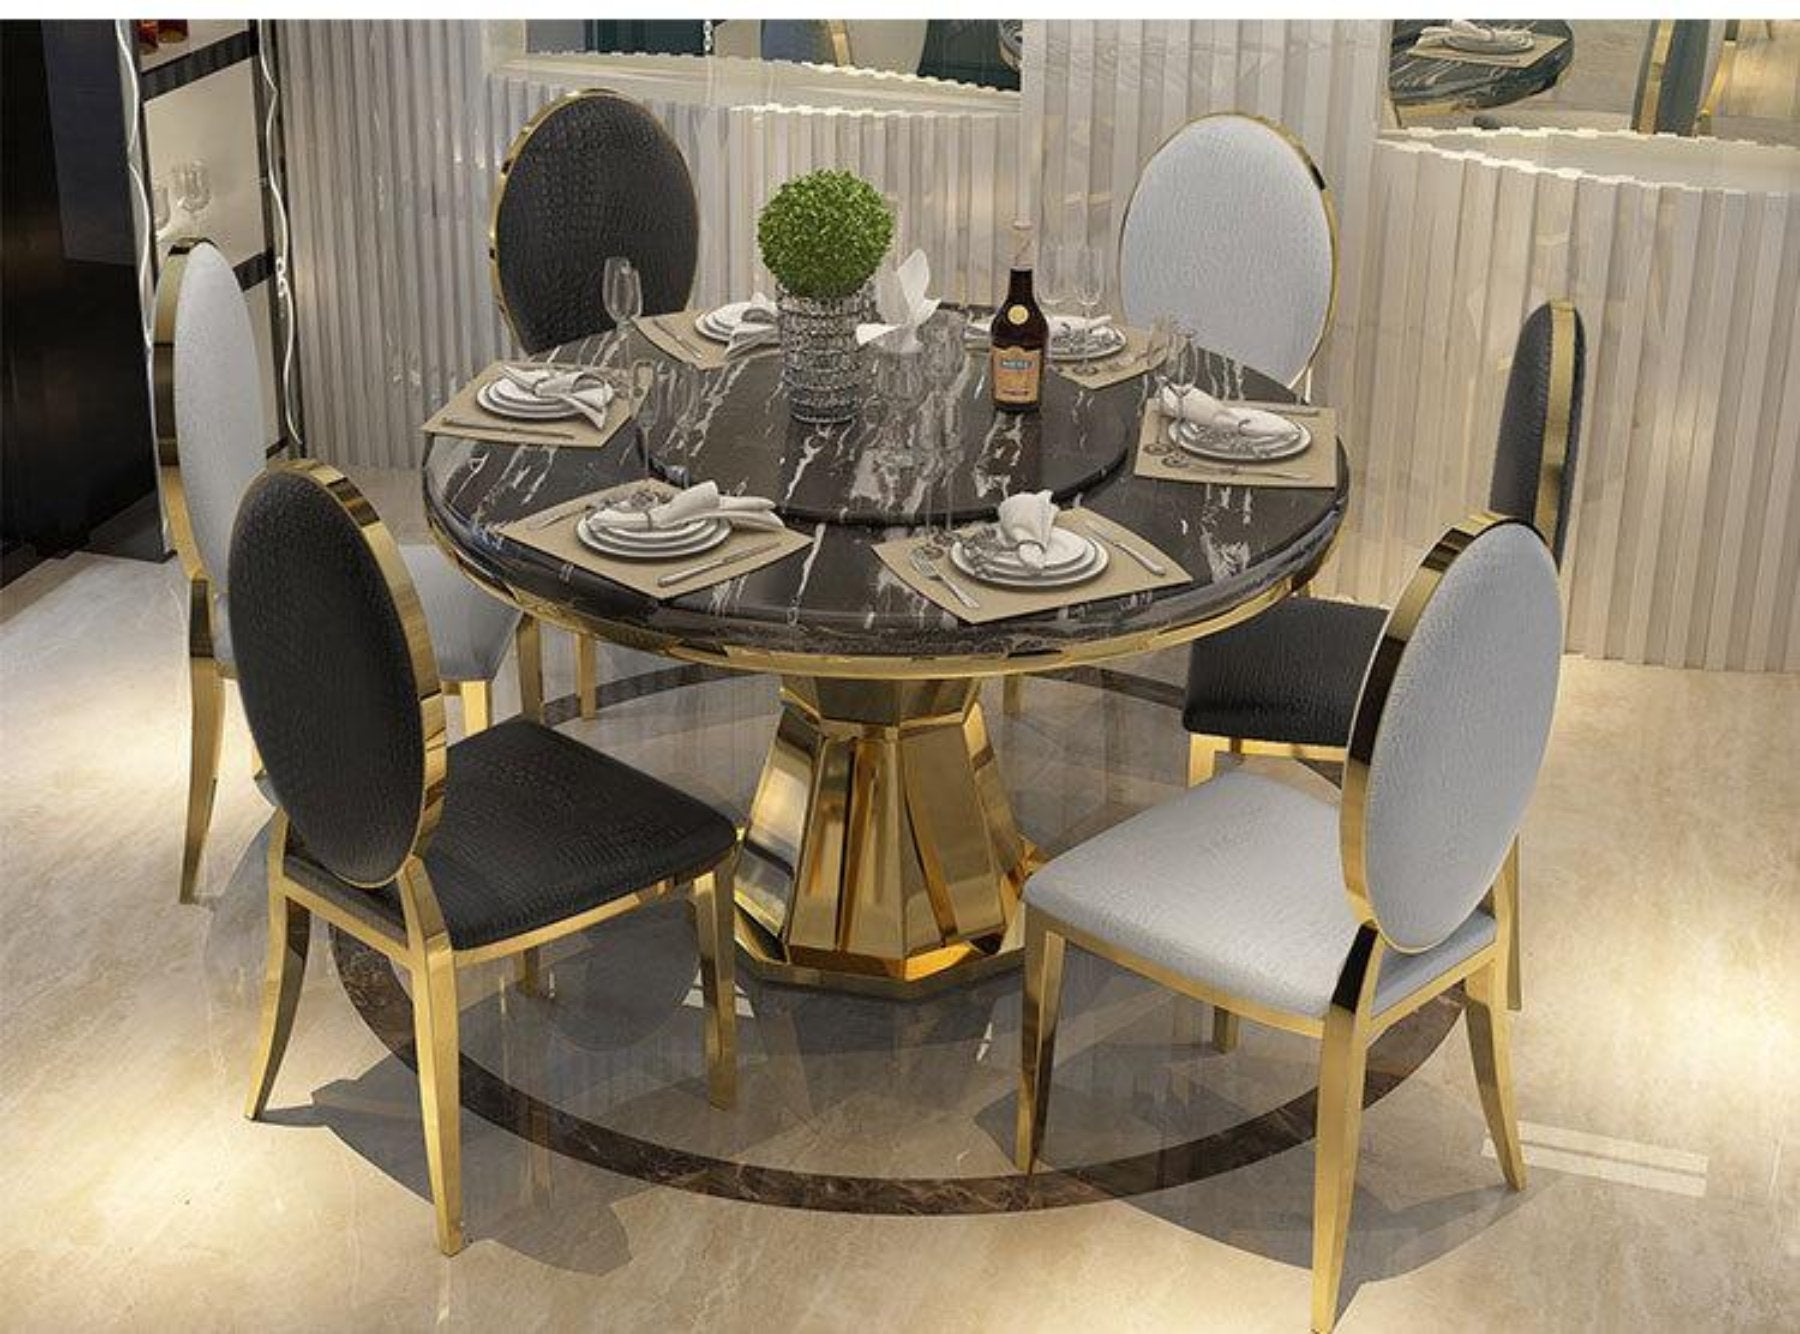 Golden Round Marble Top Dining Table With Luxury Chairs – My ...